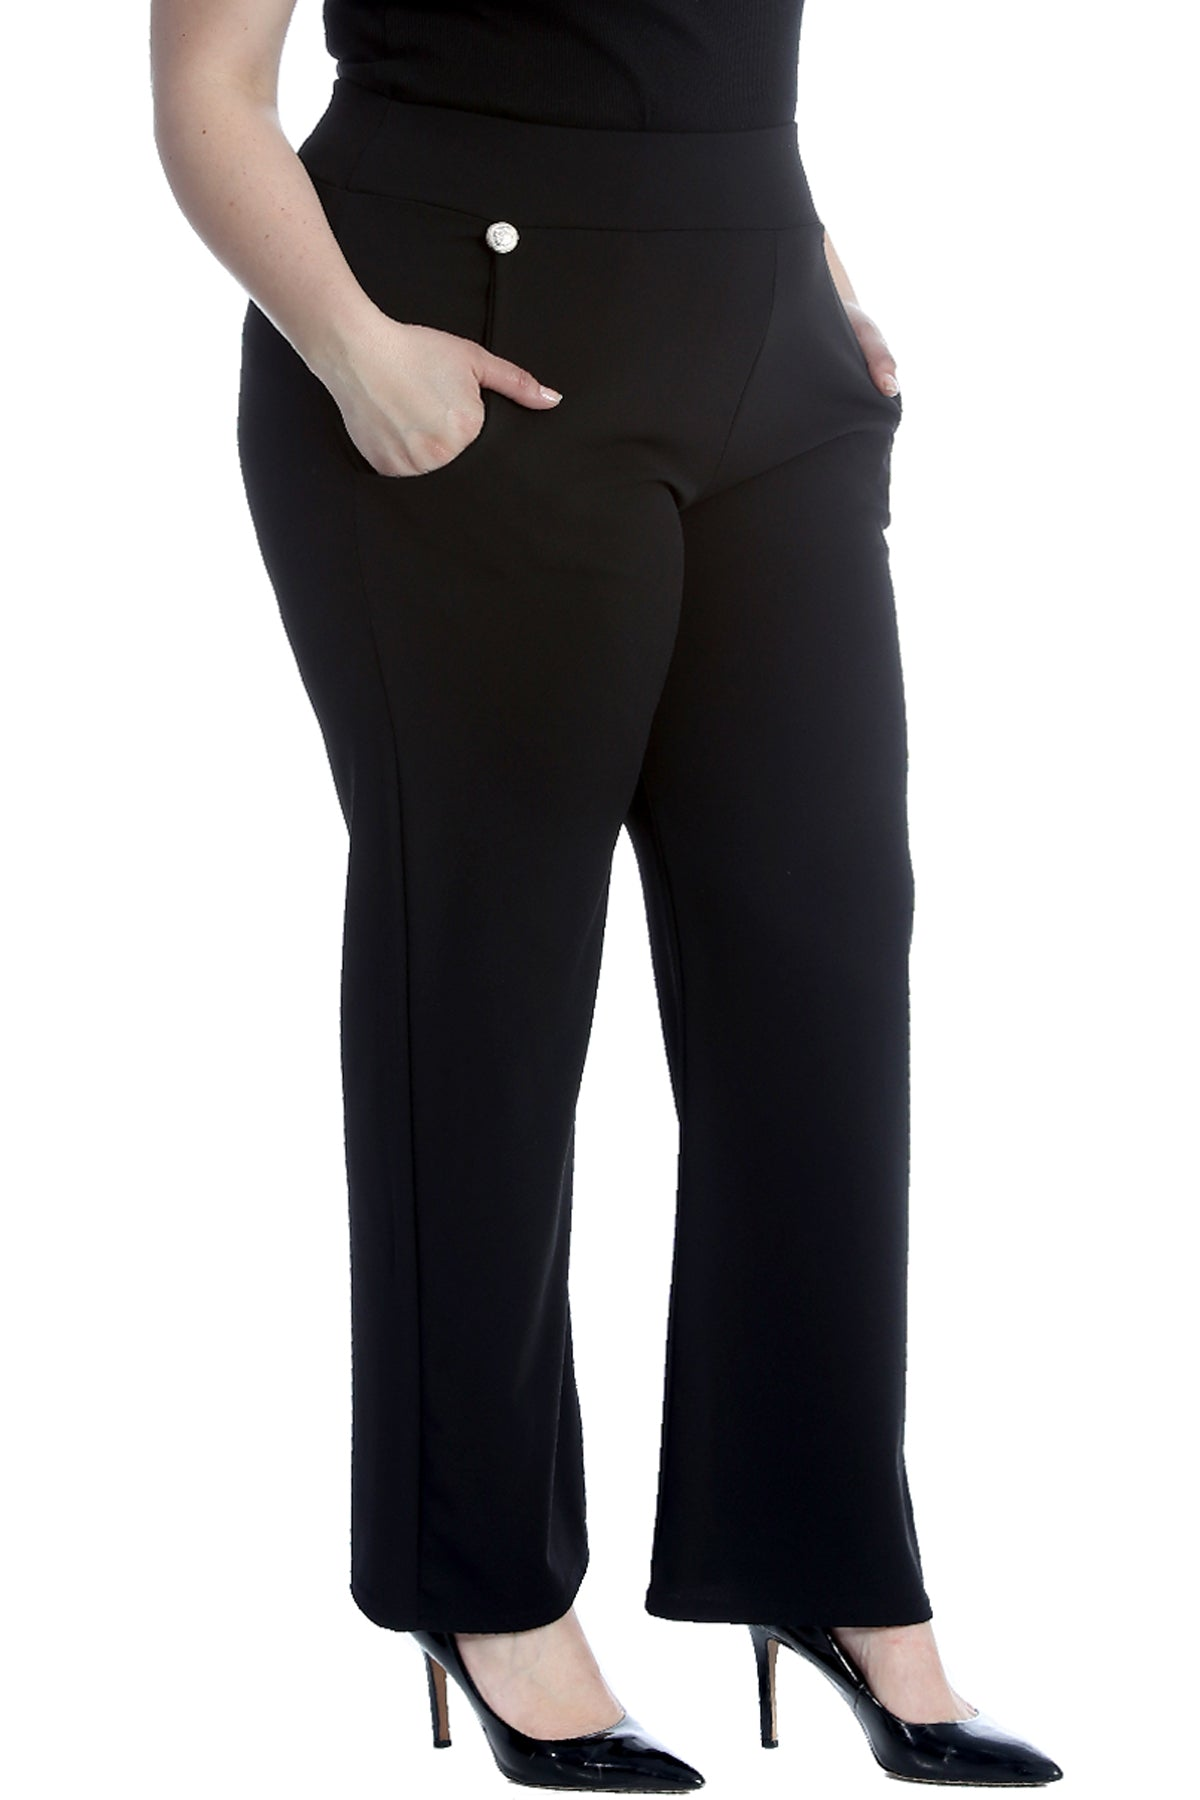 6091 High Waist Side Pocket Trousers